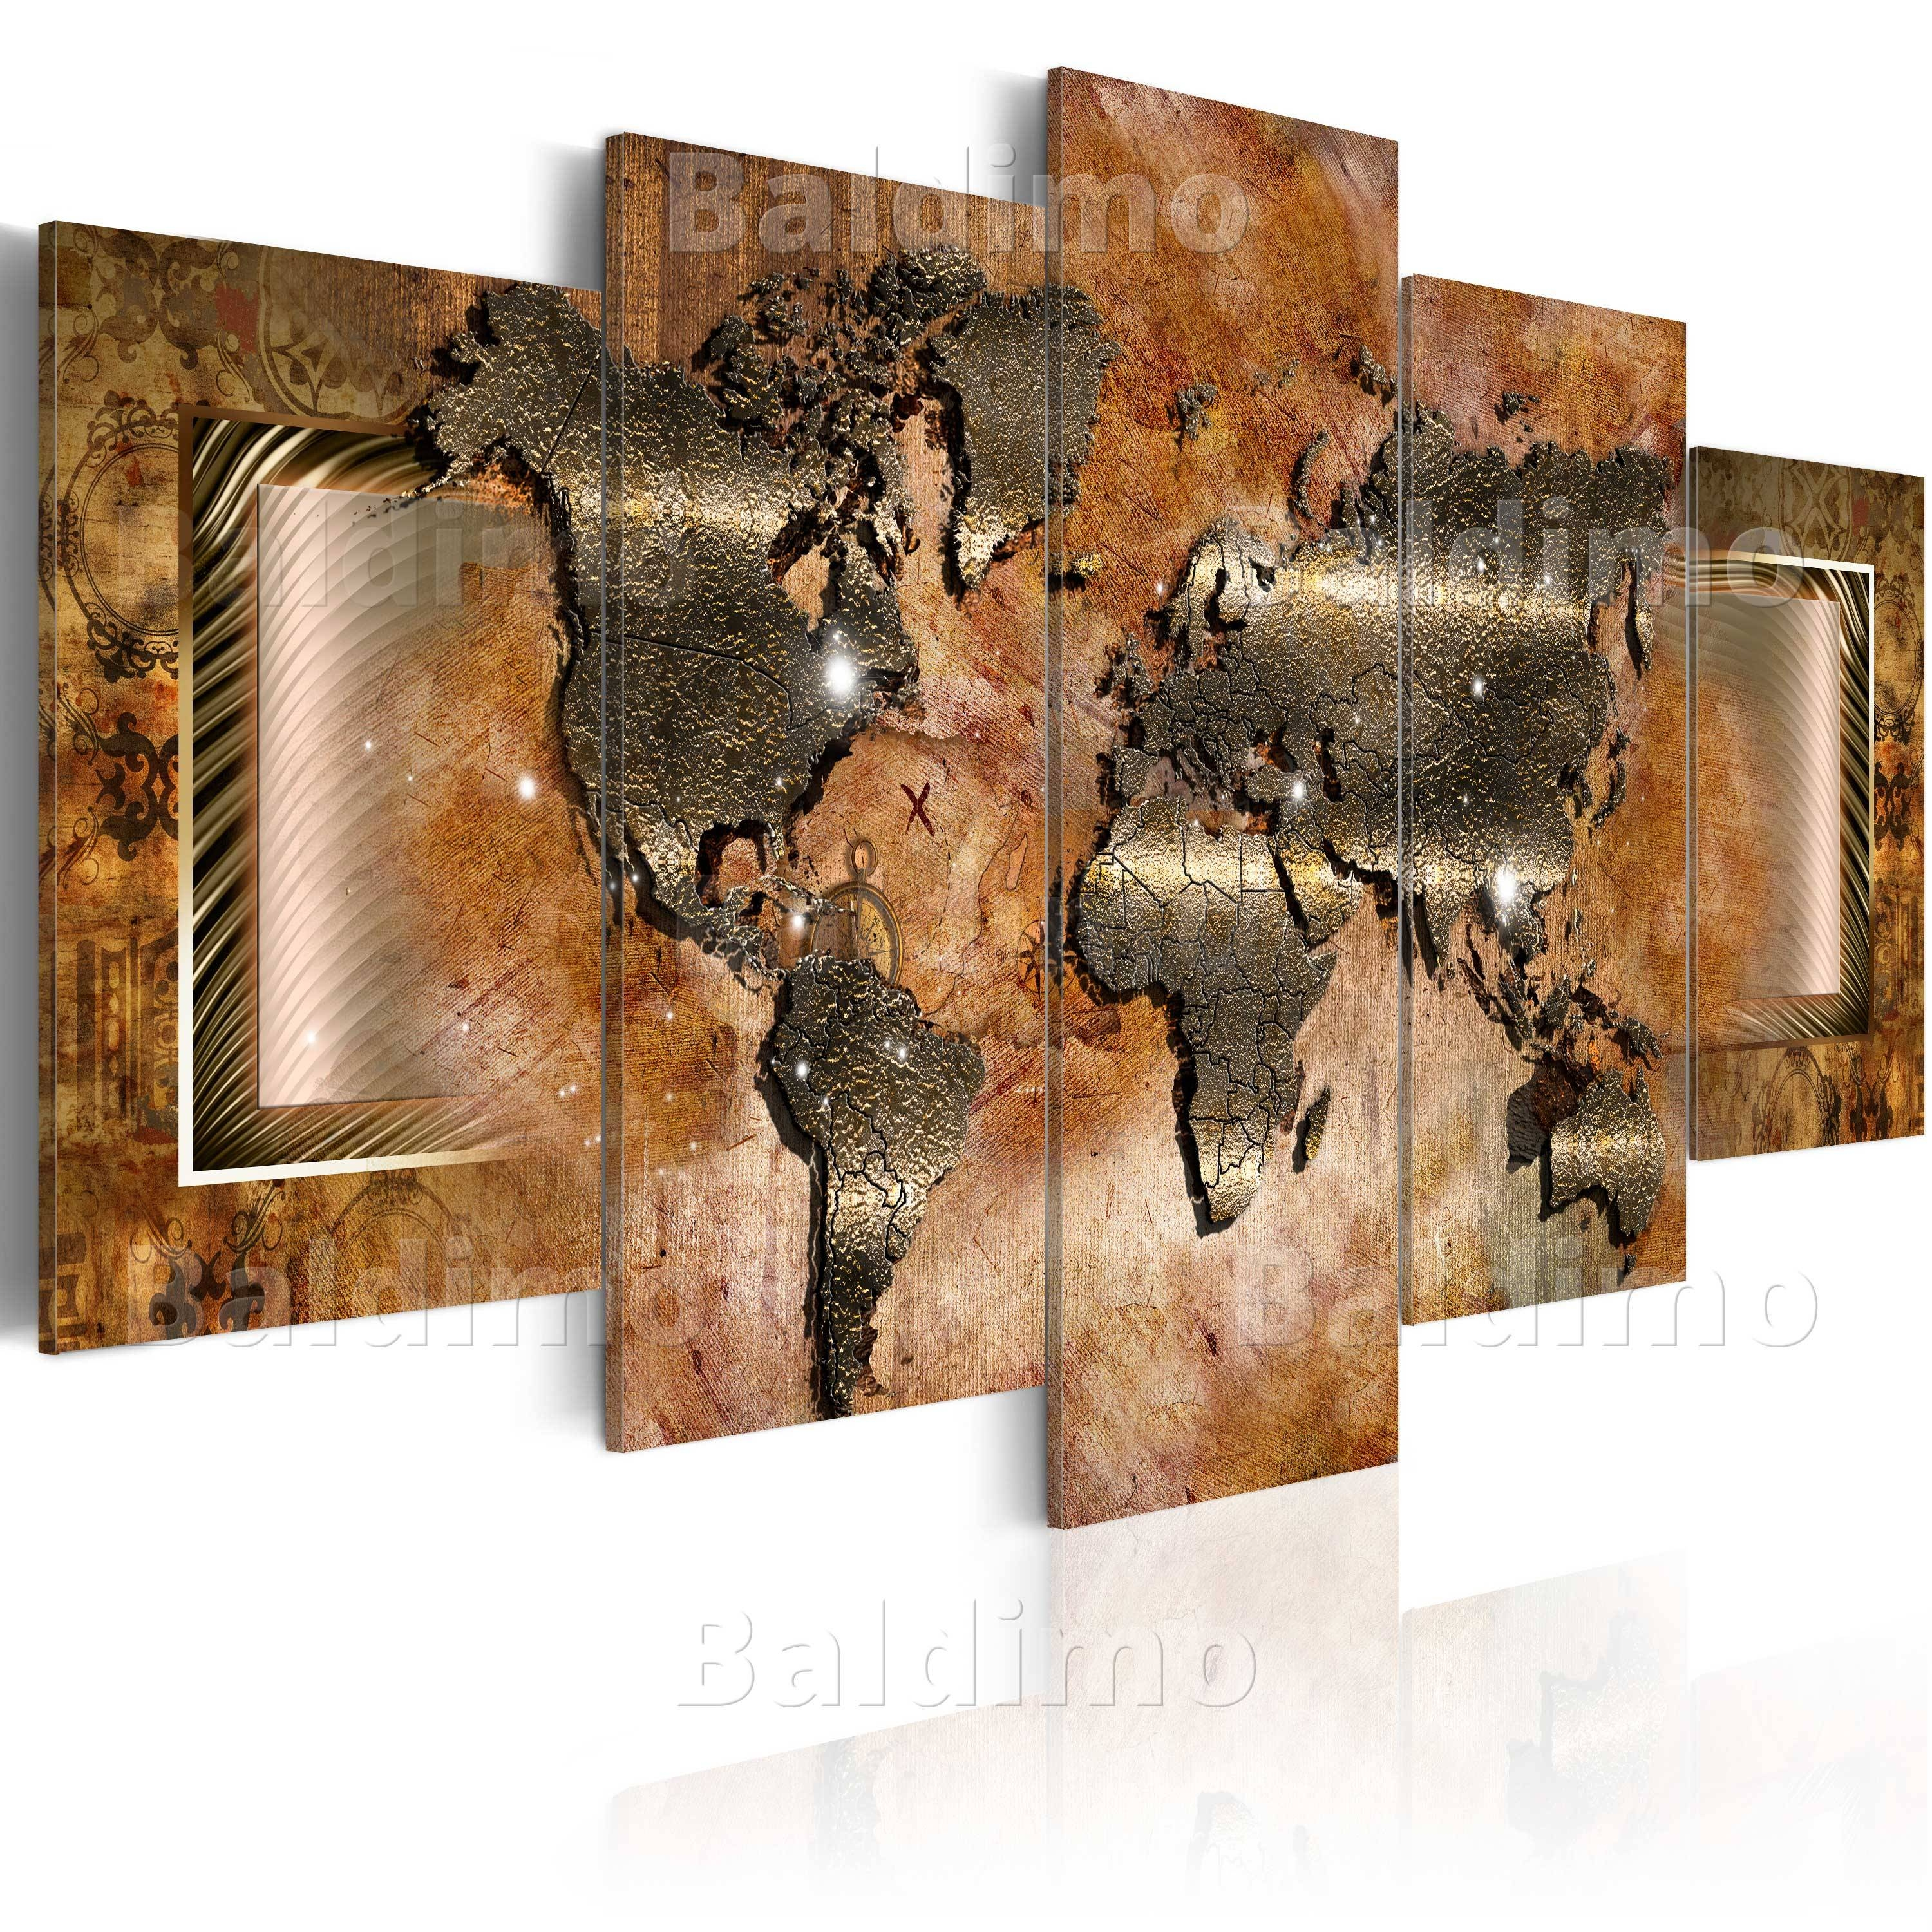 Articles With Large Canvas Wall Art Amazon Tag: Canvas Wall Art With Regard To Latest Map Wall Artwork (View 8 of 20)